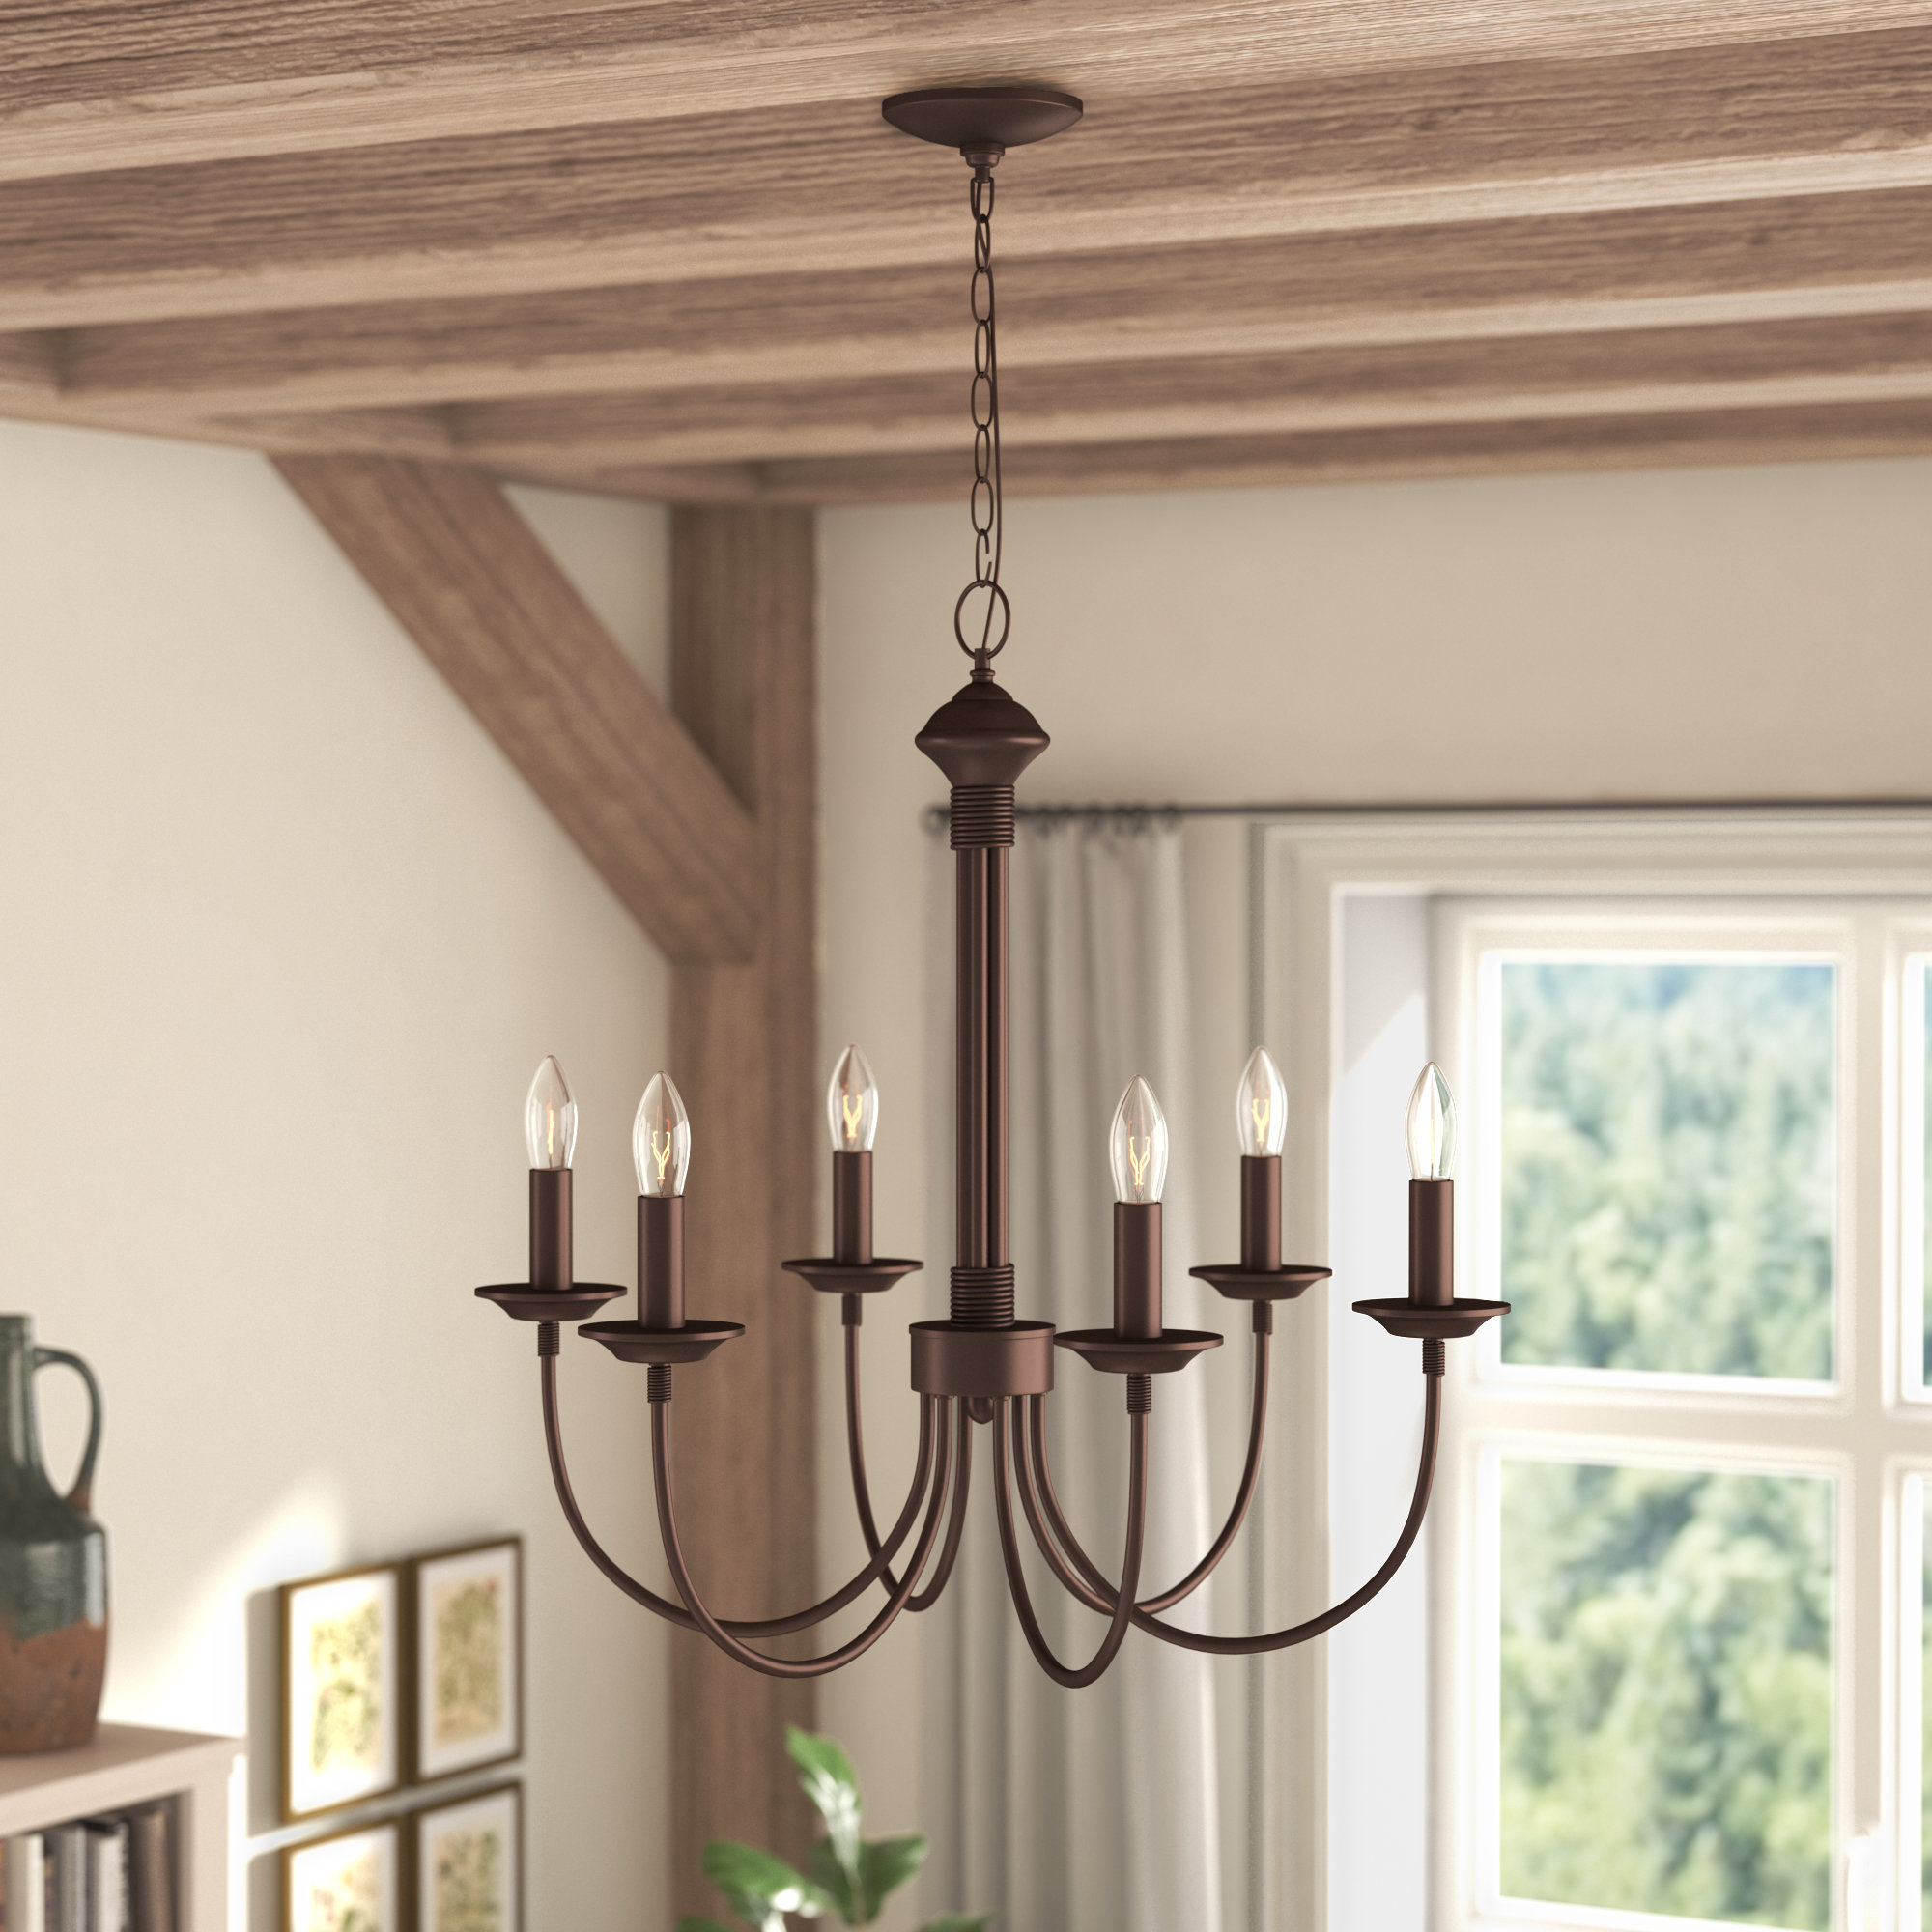 Laurel Foundry Modern Farmhouse Shaylee 6 Light Candle Style Chandelier Pertaining To Most Recently Released Shaylee 6 Light Candle Style Chandeliers (View 6 of 25)